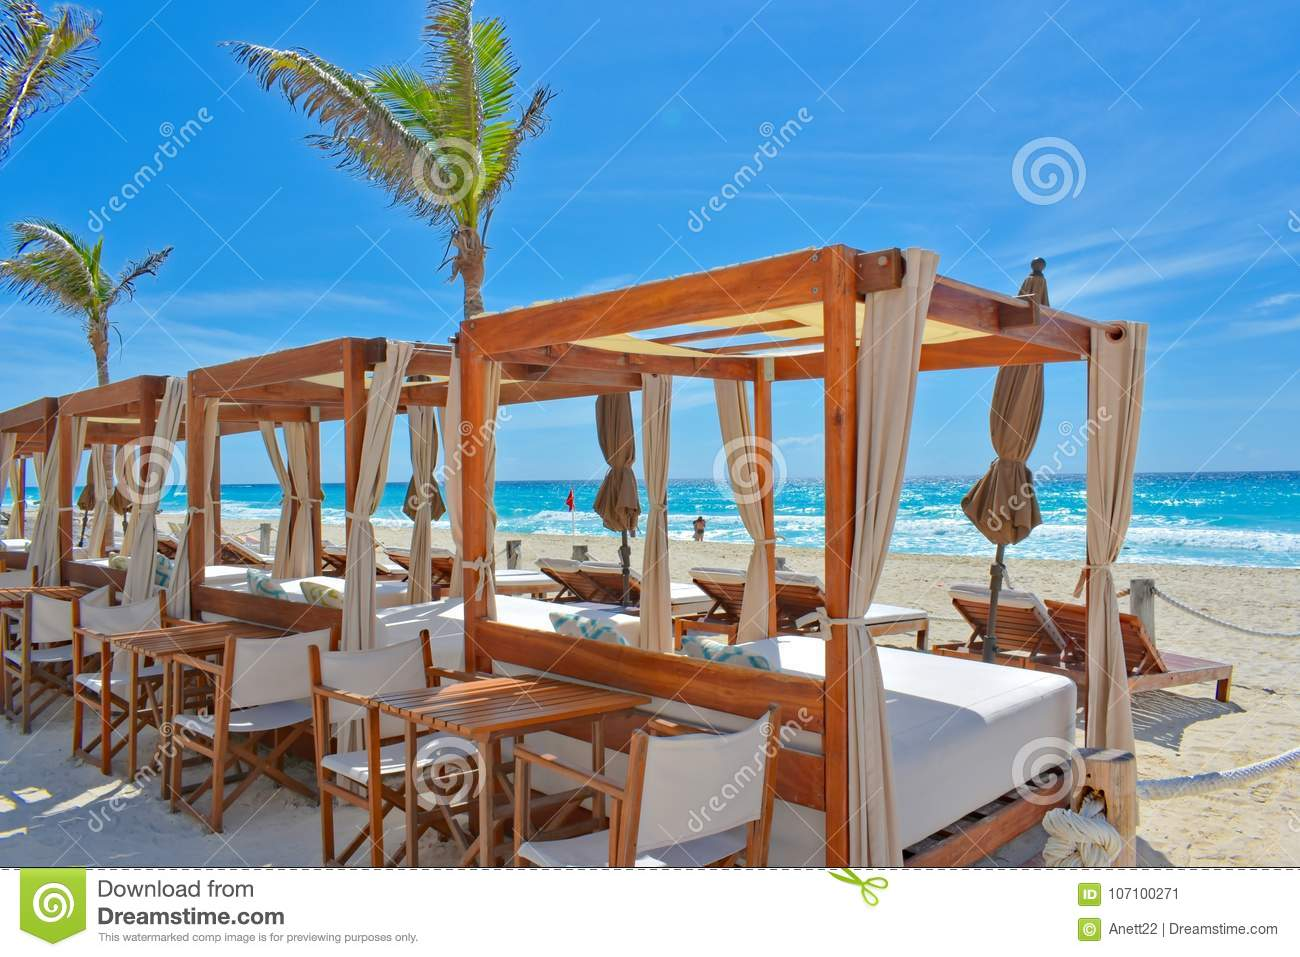 A luxury beach setting in Cancun, México.